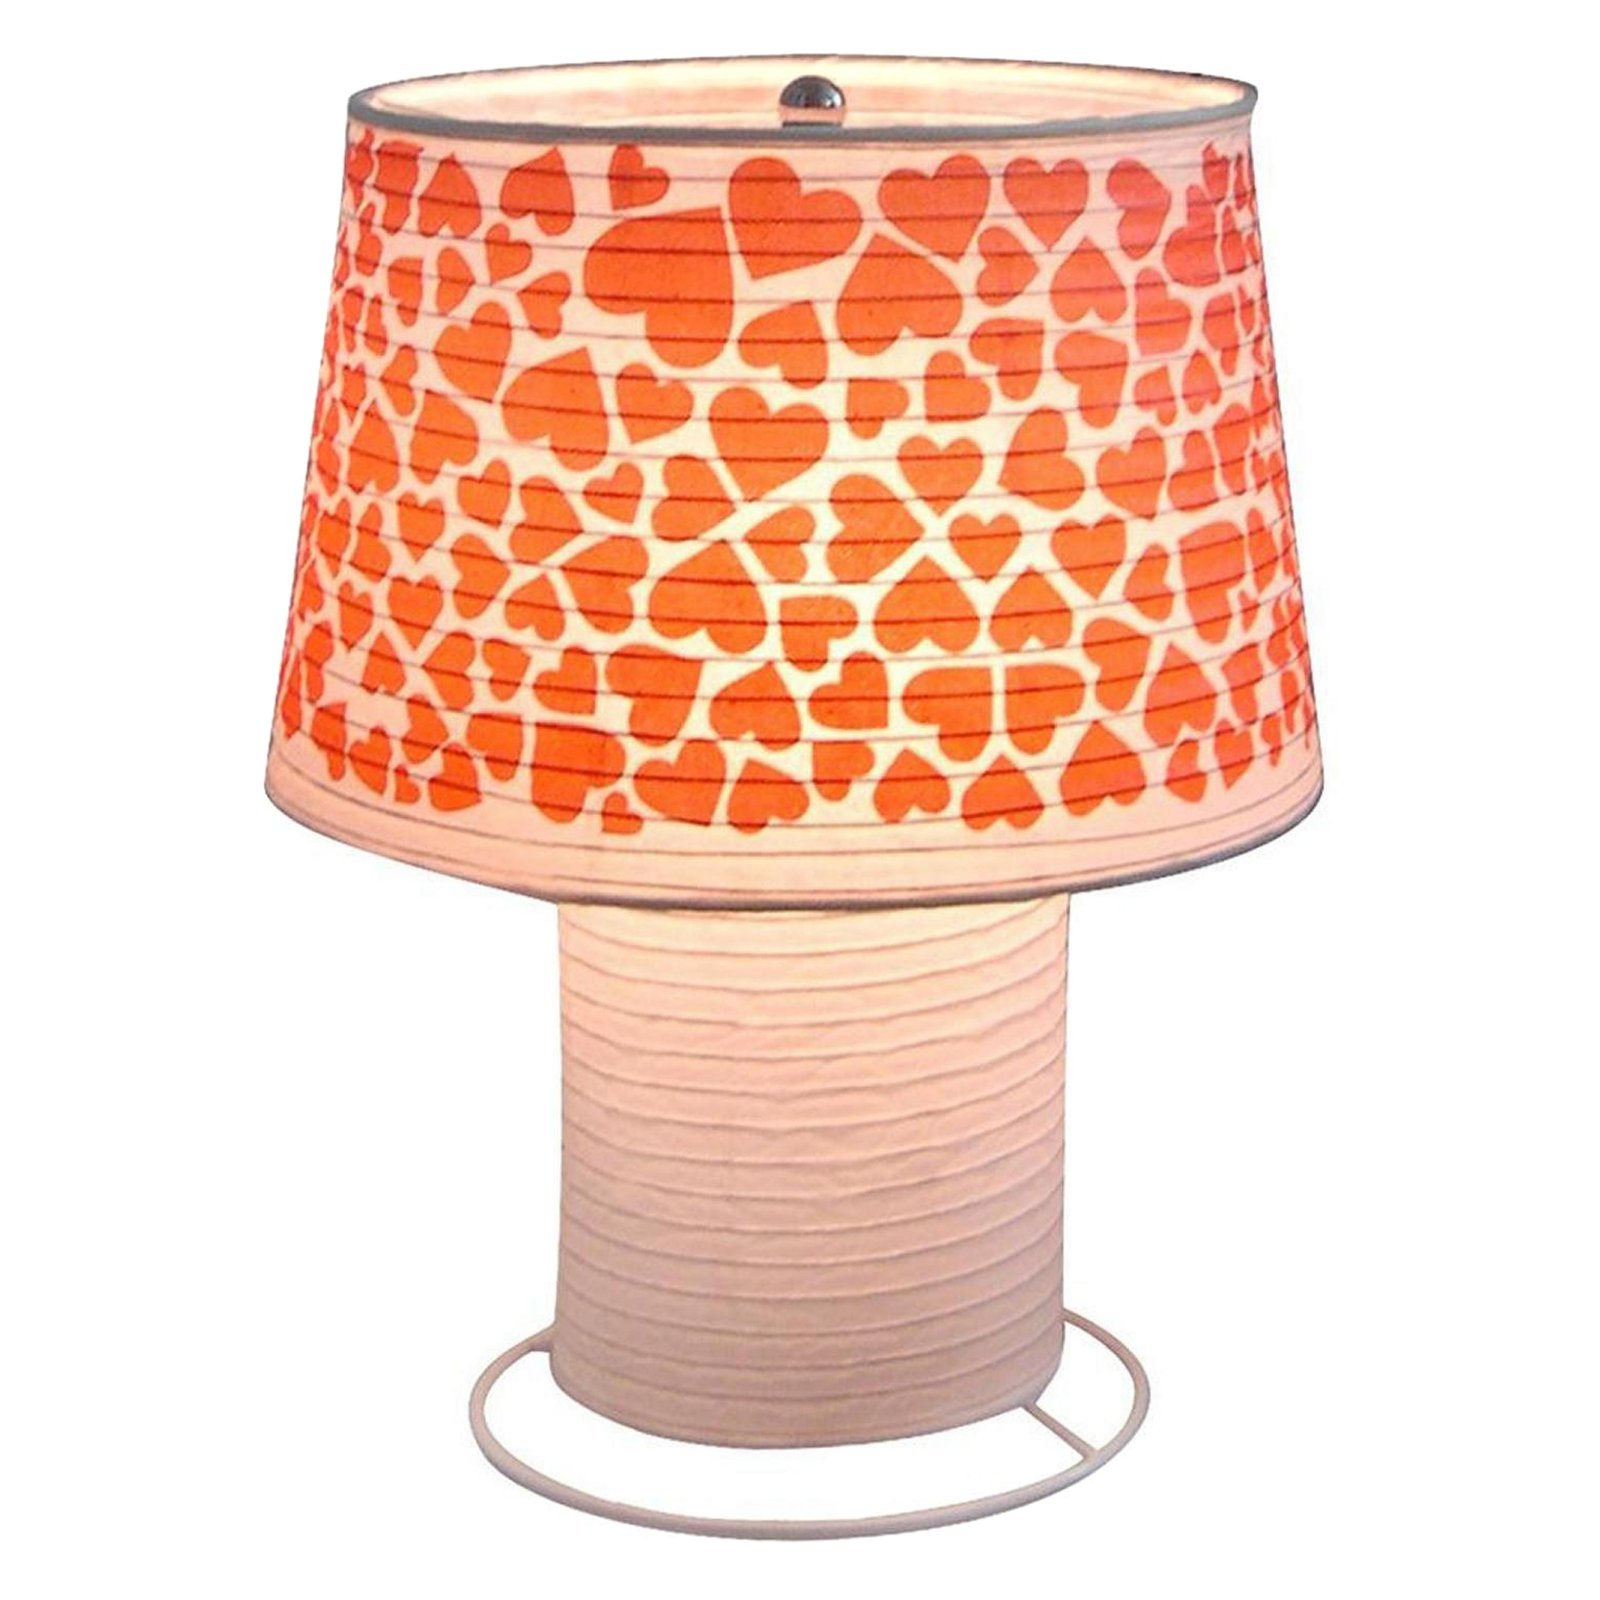 "Heart Paper Lantern Desk Lamp, White, Home, Room, Office Decor, Paper Lantern with hearts printing on the lamp, Product Size after assembly : 9.44"" x 11.81"" x 9.44"""